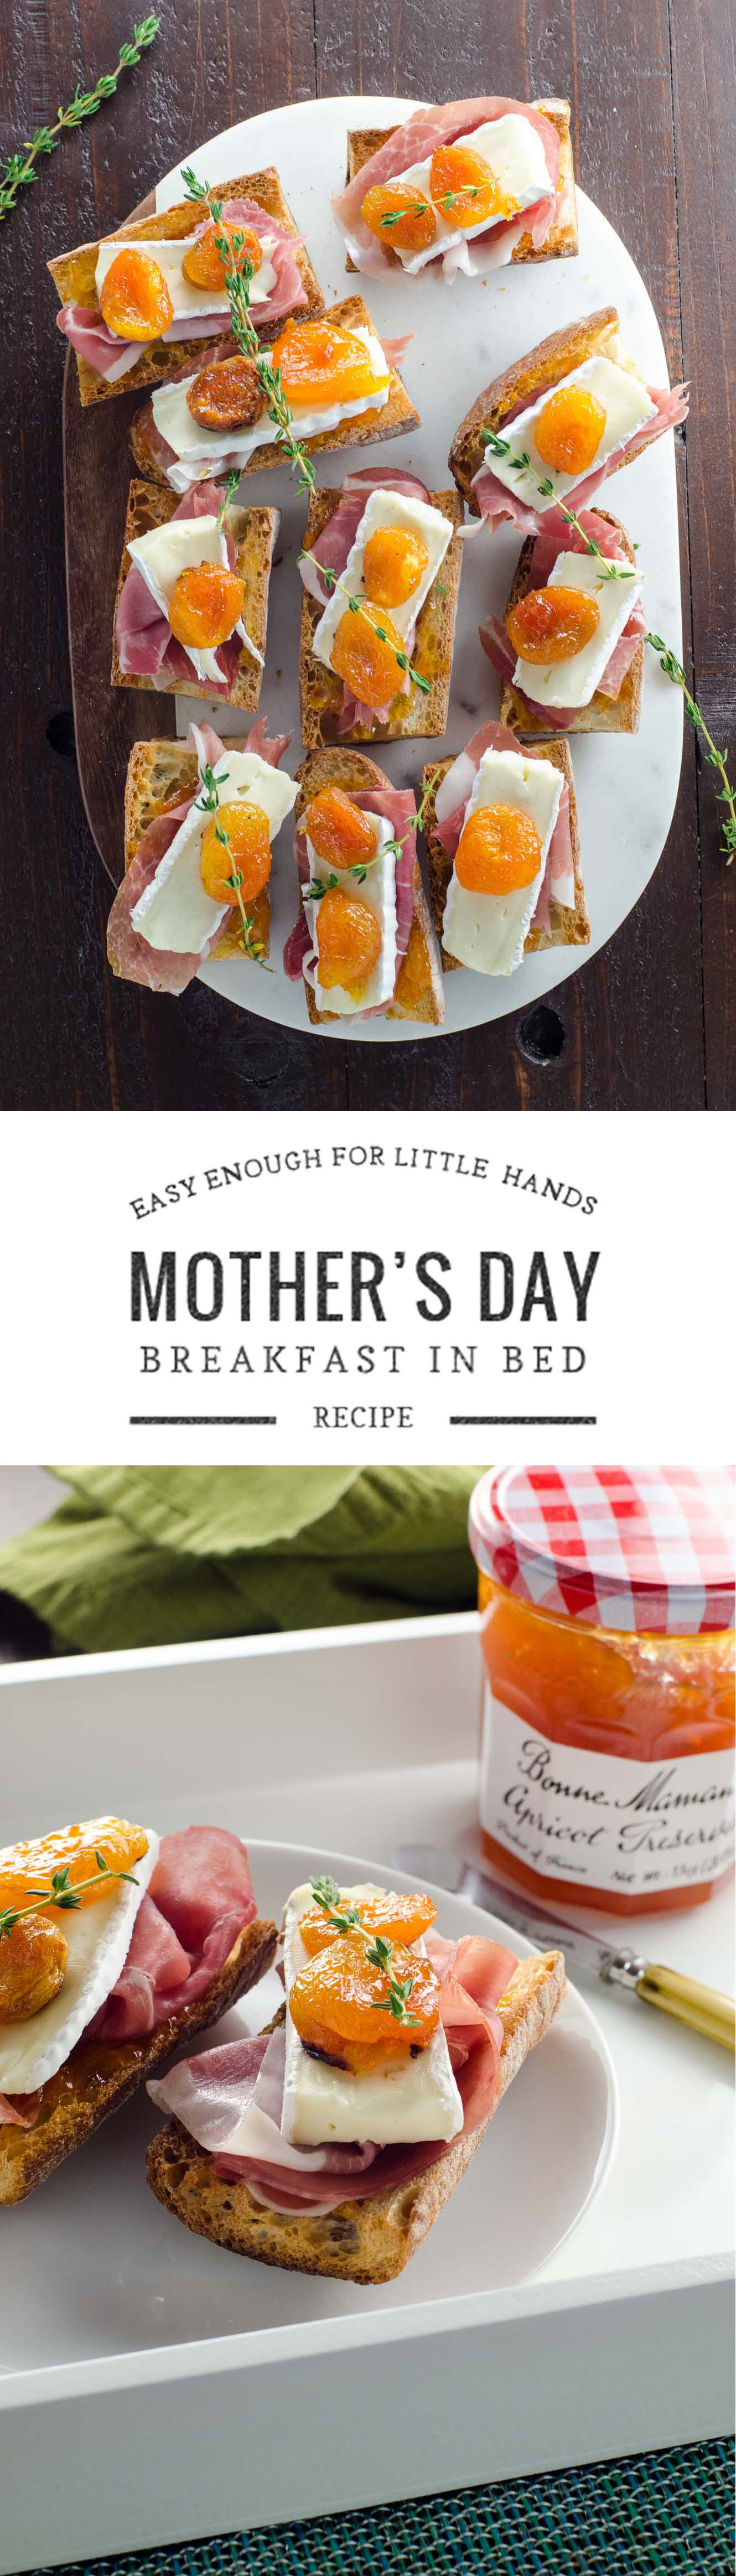 An easy but elegant breakfast in bed idea for Mother's Day. Also makes a great appetizer. #sponsored #sayitwithhomemade @bonnemamanus